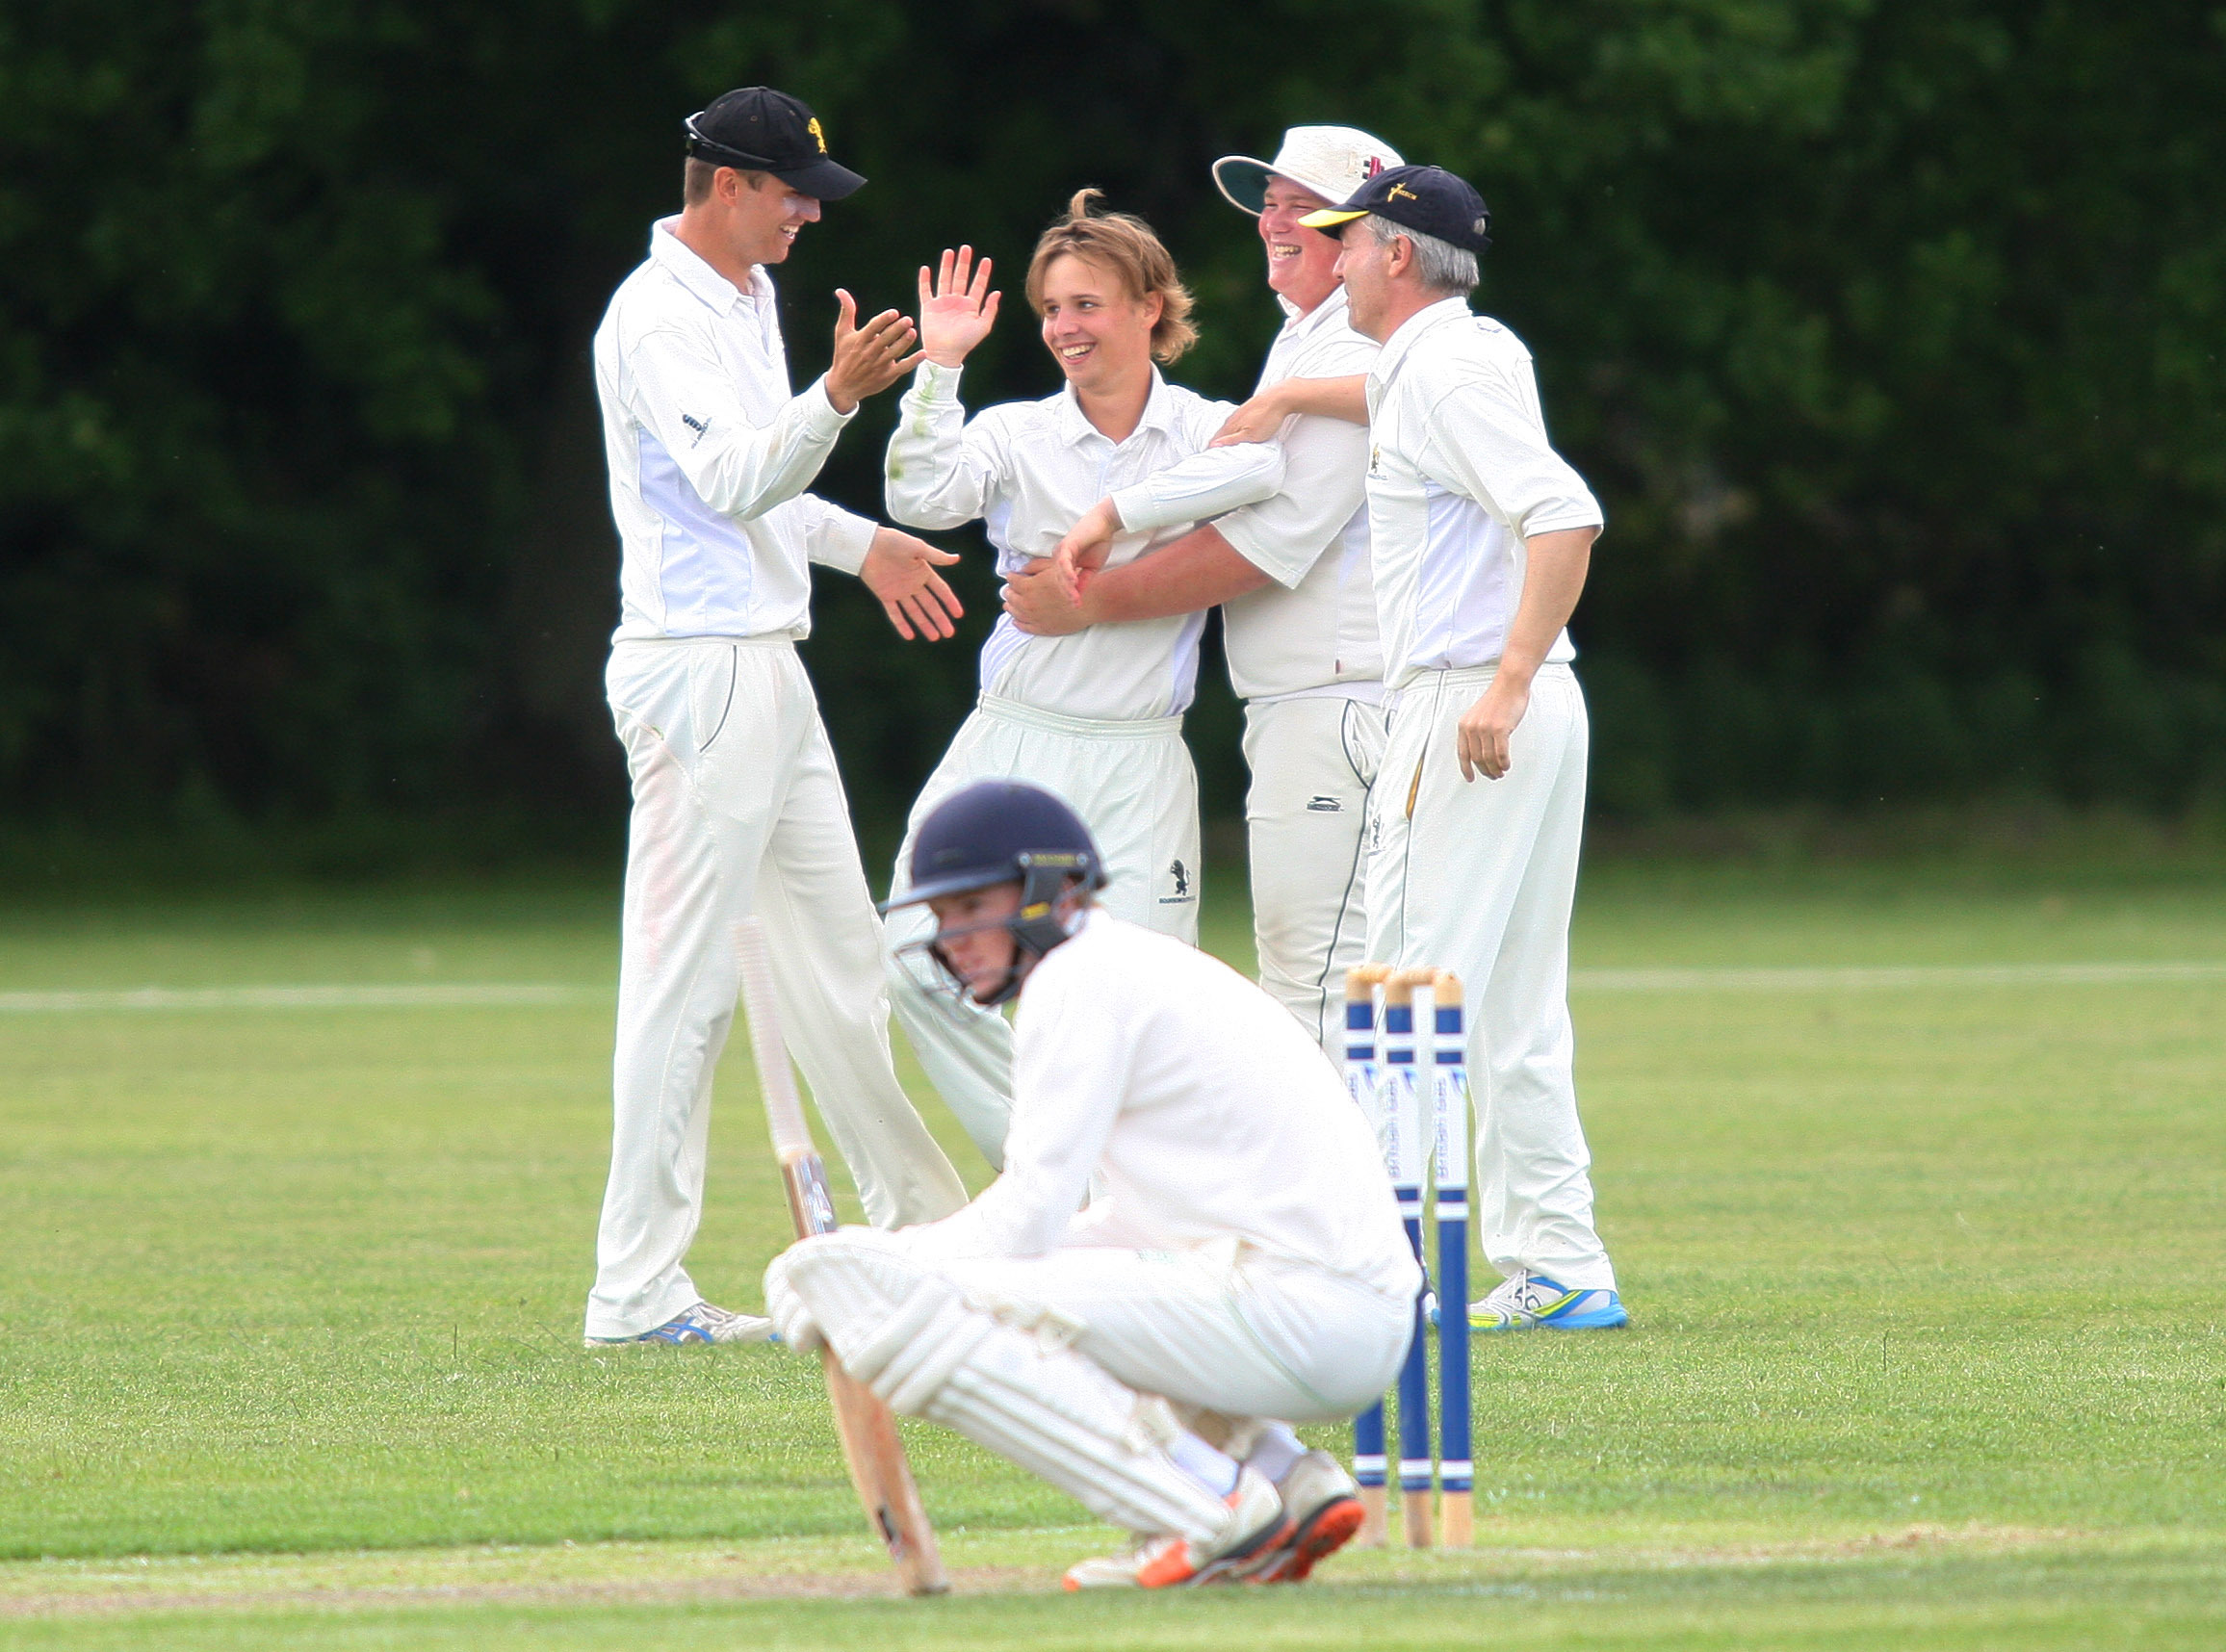 IN THE WICKETS: Bournemouth's Dom Clutterbuck was in fine form for Oxford MCCU